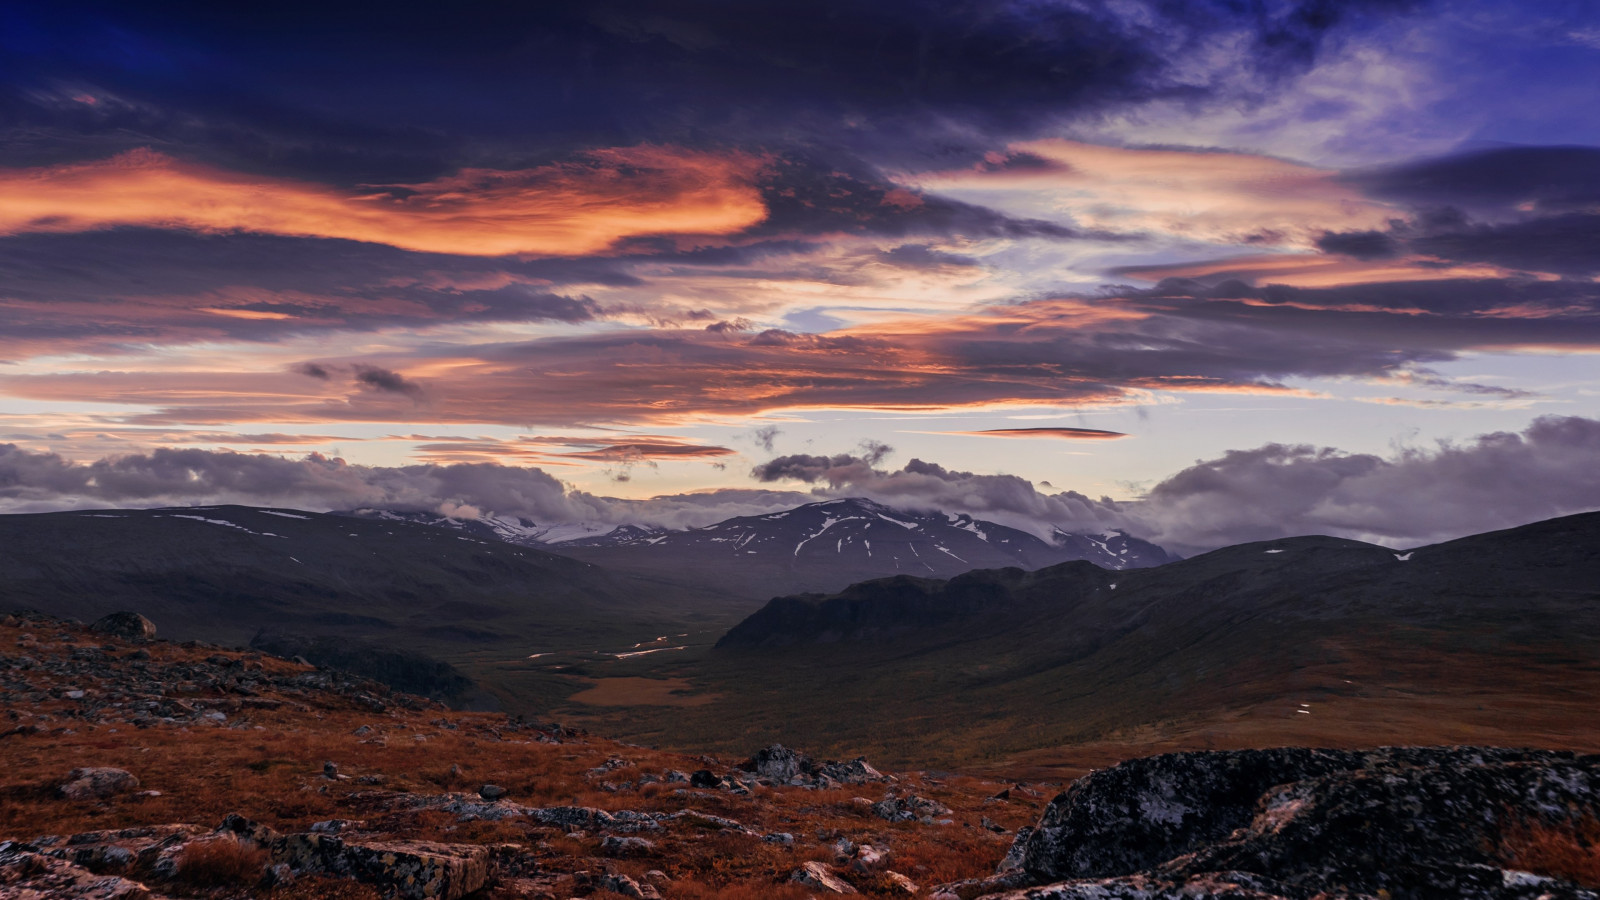 Sunset from Sarek National Park wallpaper 1600x900